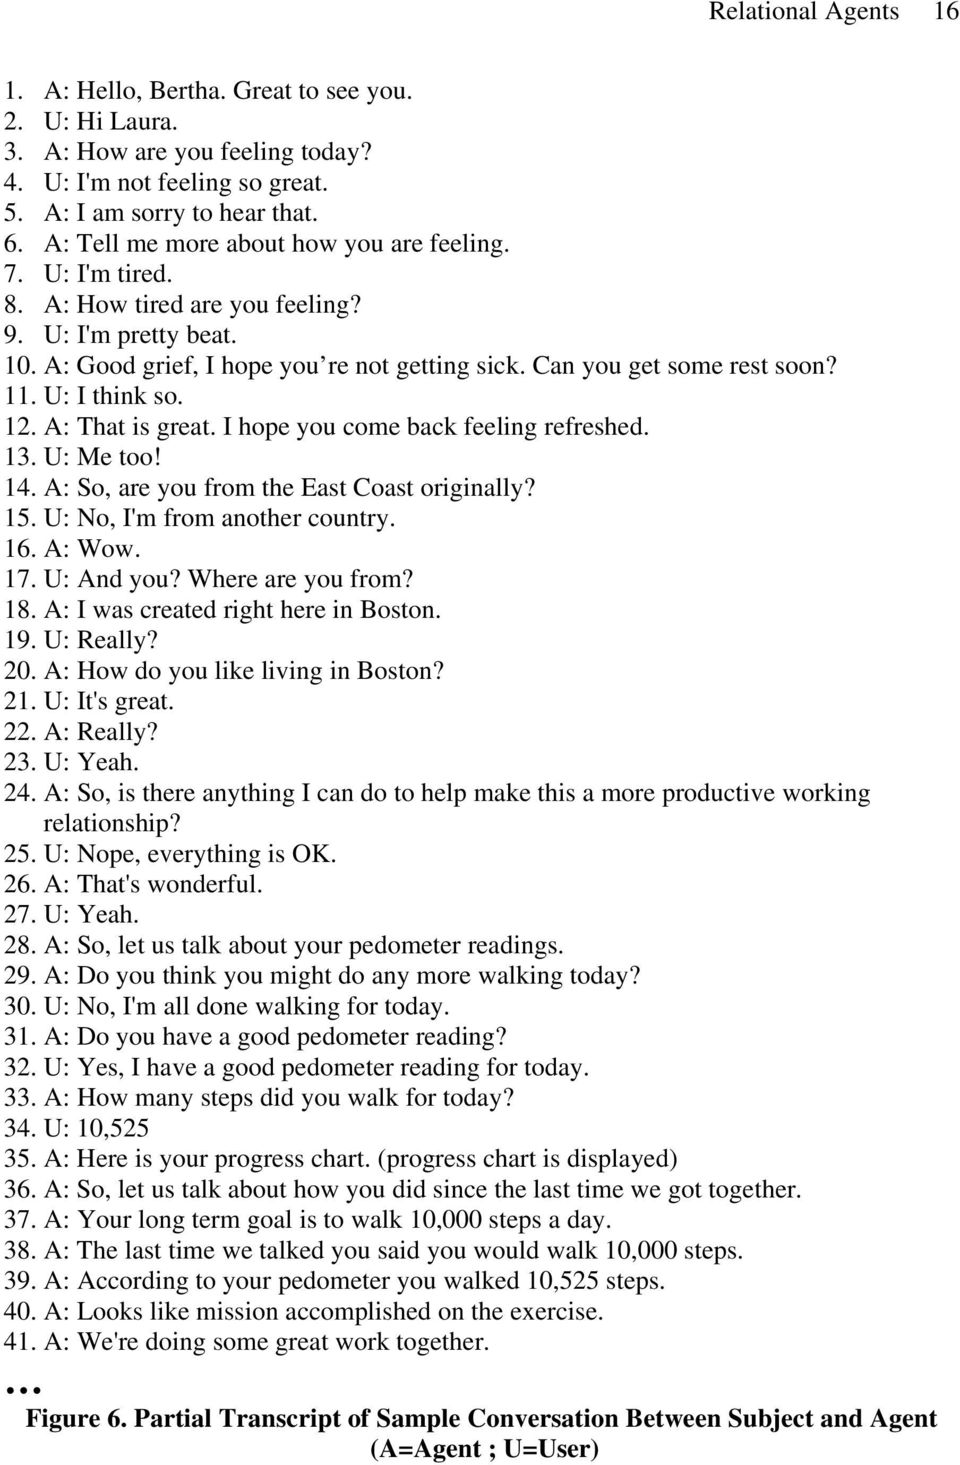 U: I think so. 12. A: That is great. I hope you come back feeling refreshed. 13. U: Me too! 14. A: So, are you from the East Coast originally? 15. U: No, I'm from another country. 16. A: Wow. 17.